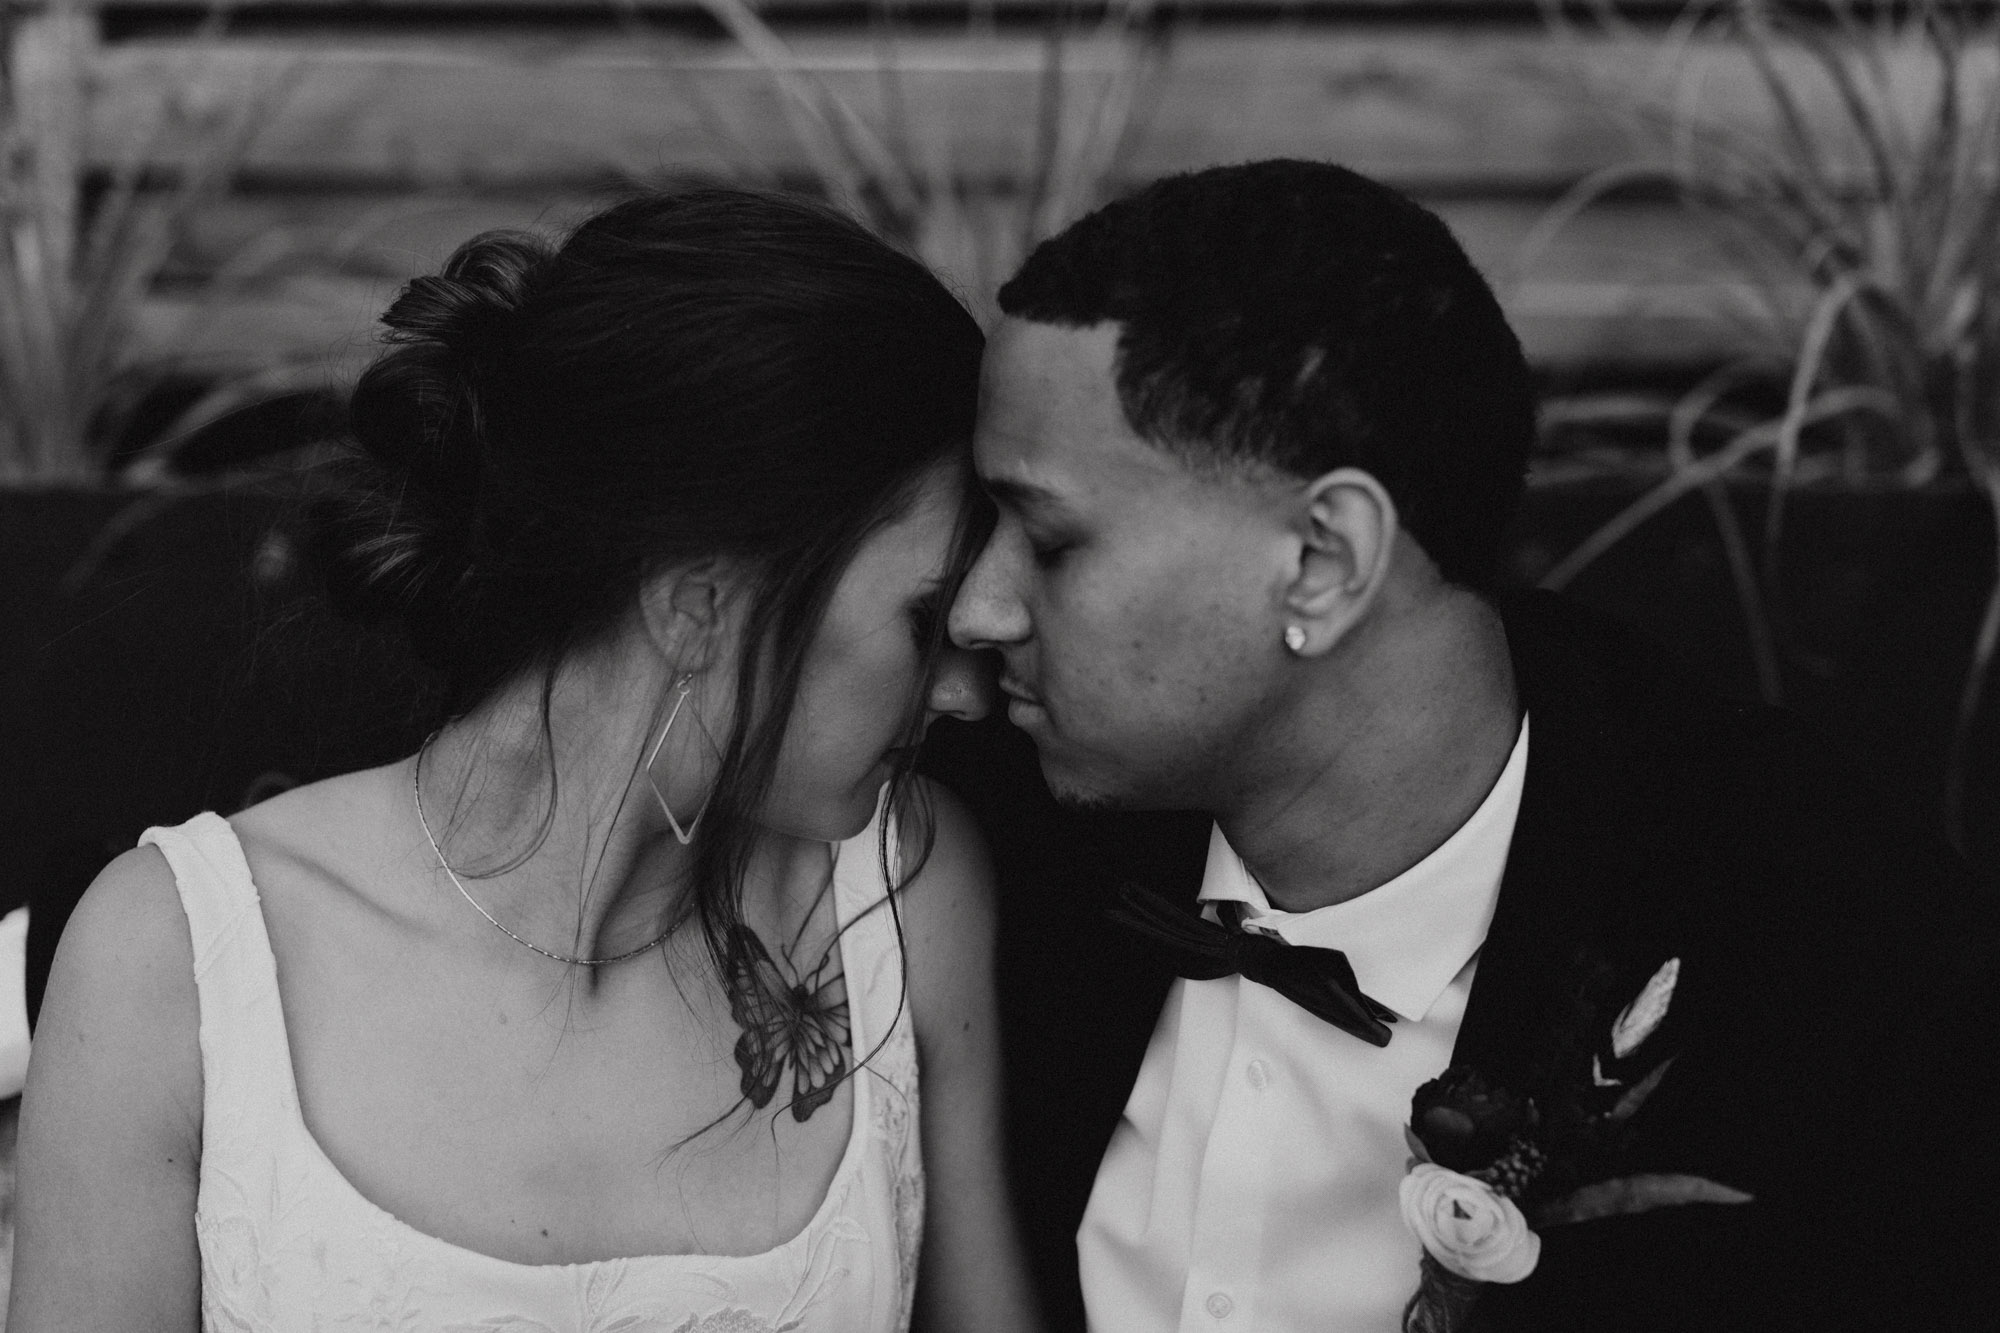 dark and moody vintage looking black and white wedding photo